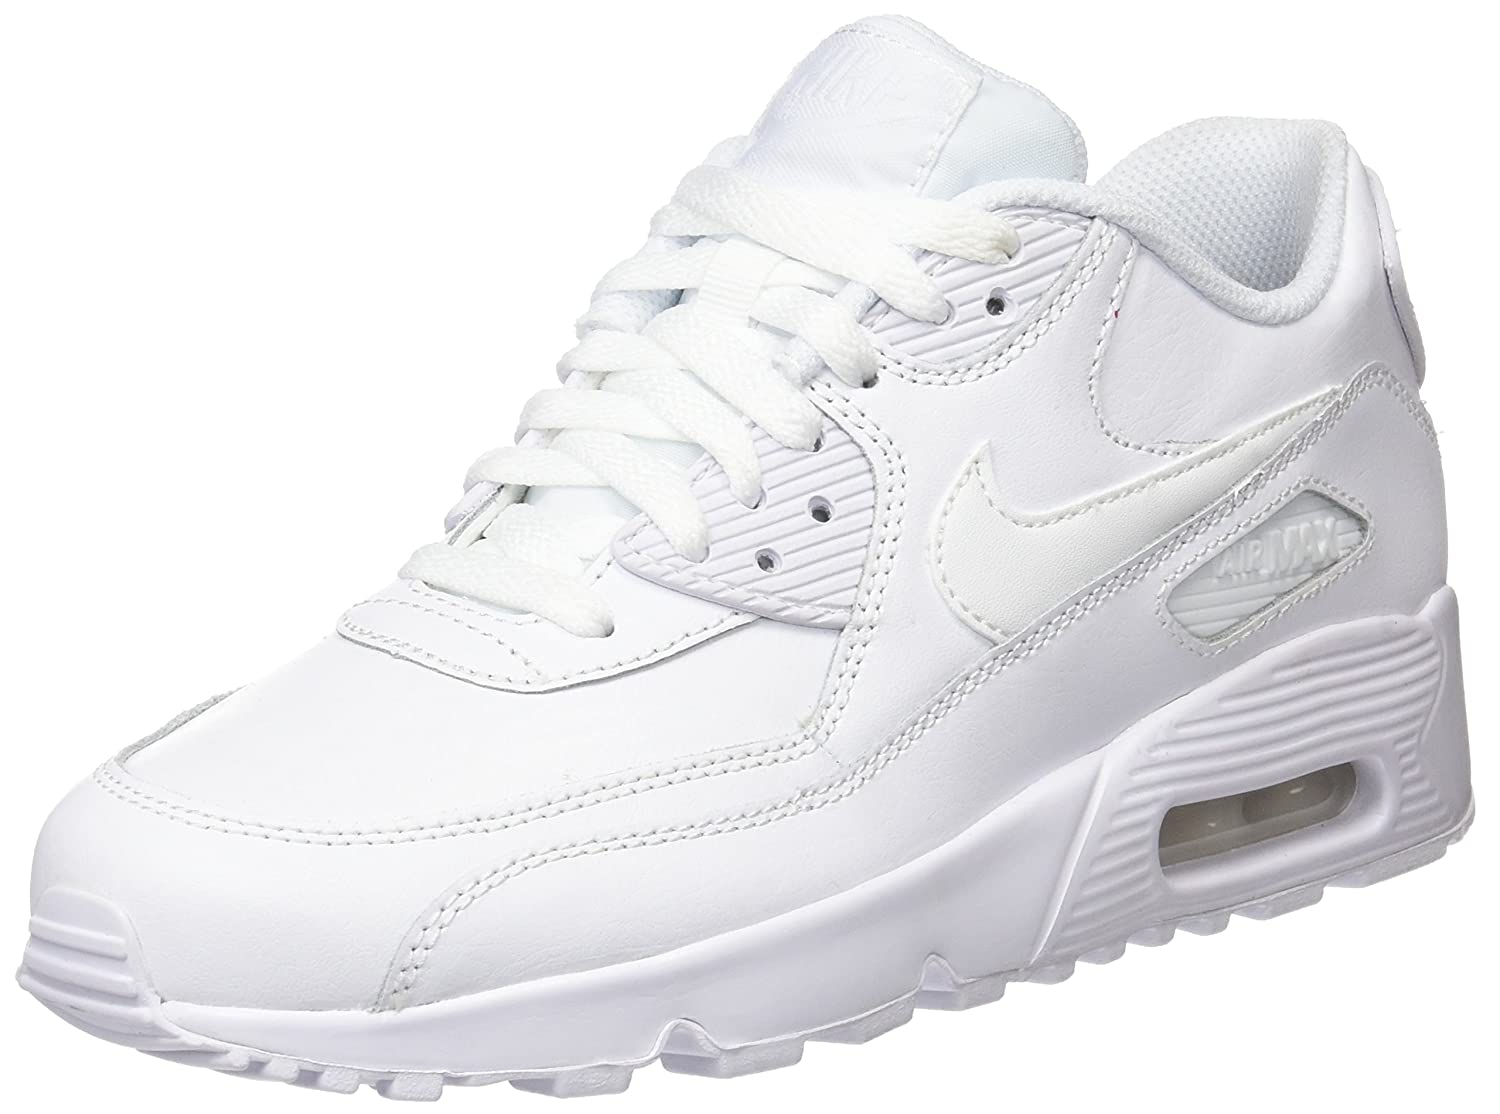 6b7a5358133 Nike Air MAX 90 Leather